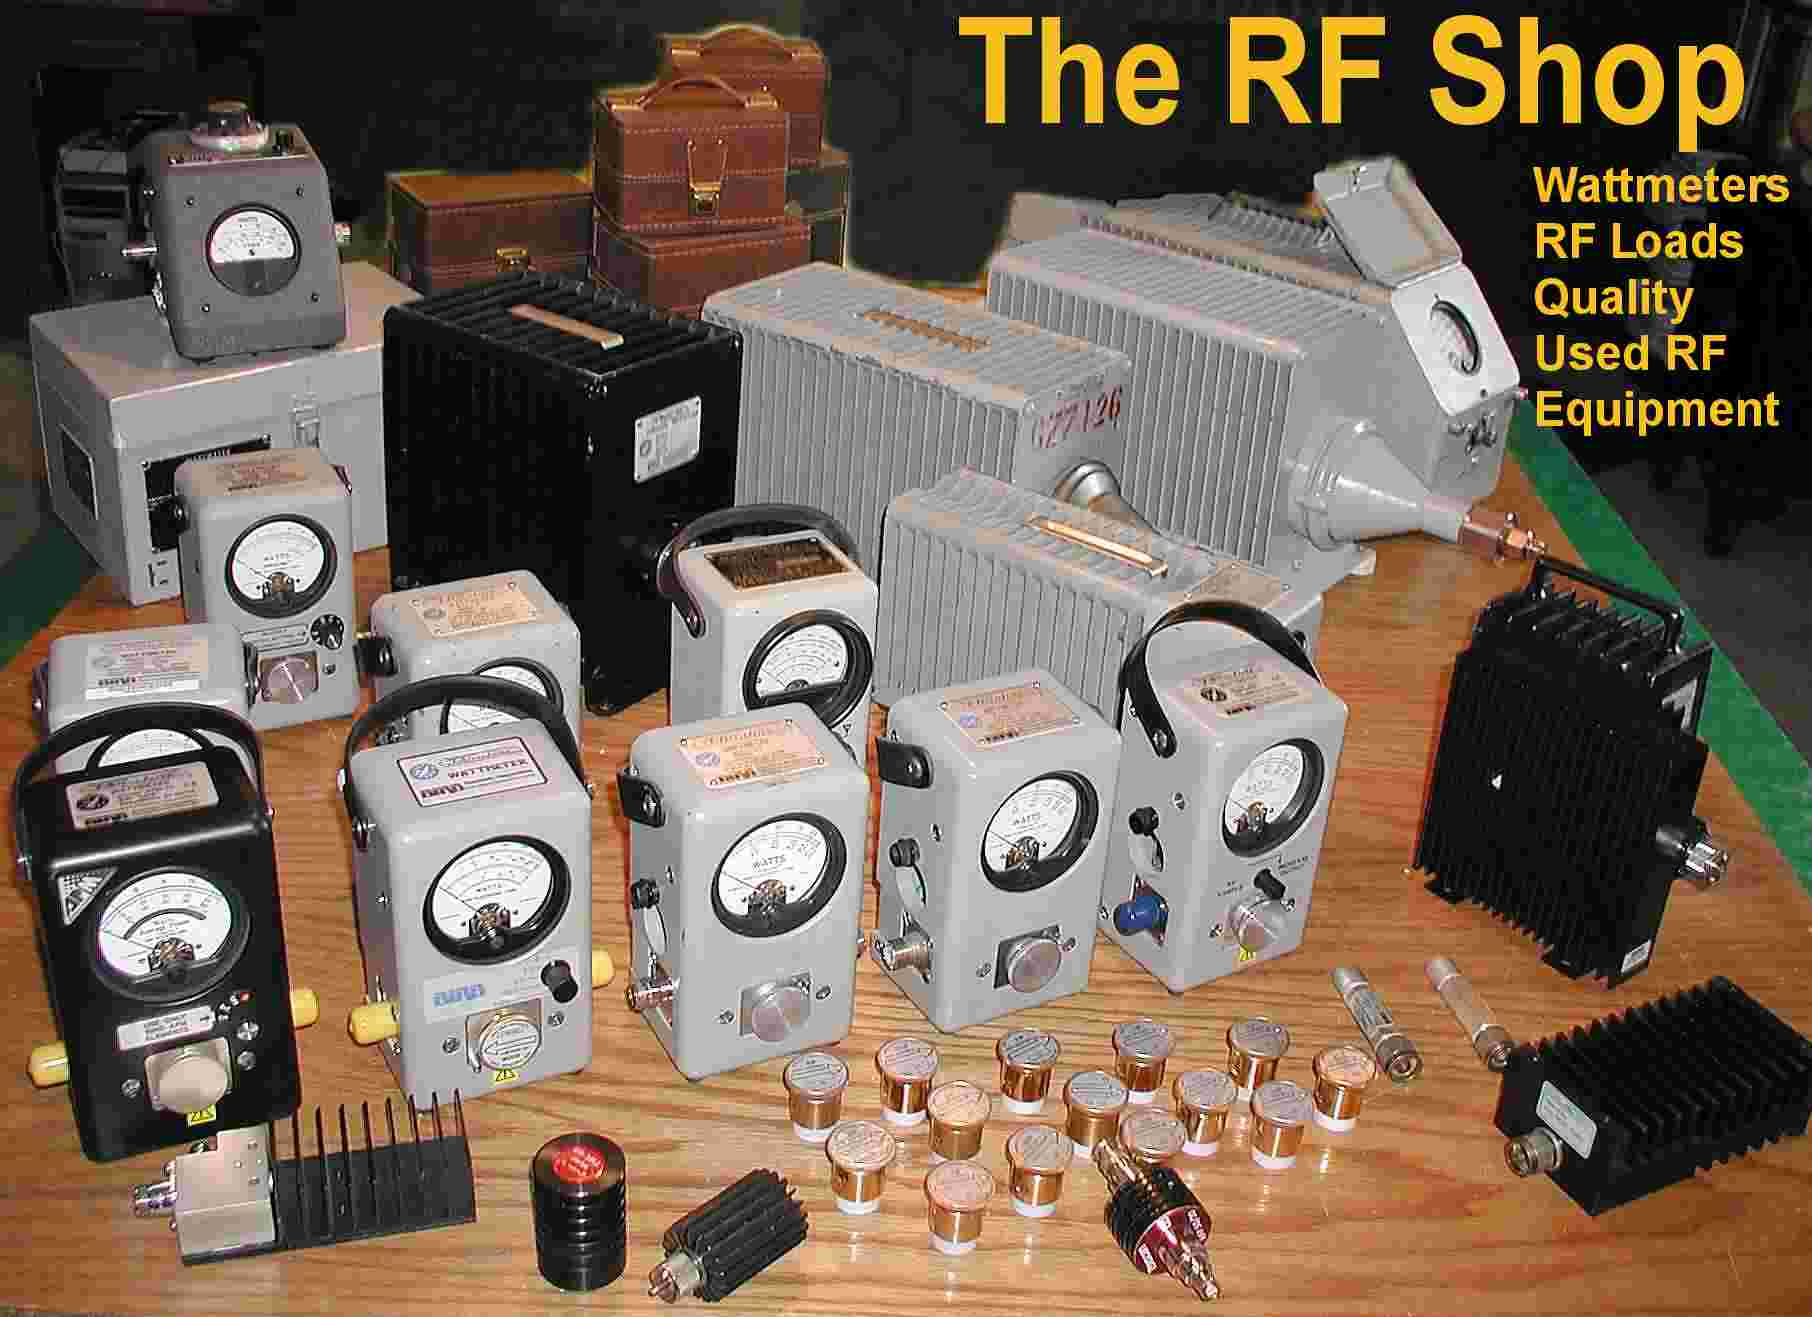 The RF Shop Wattmeter Display